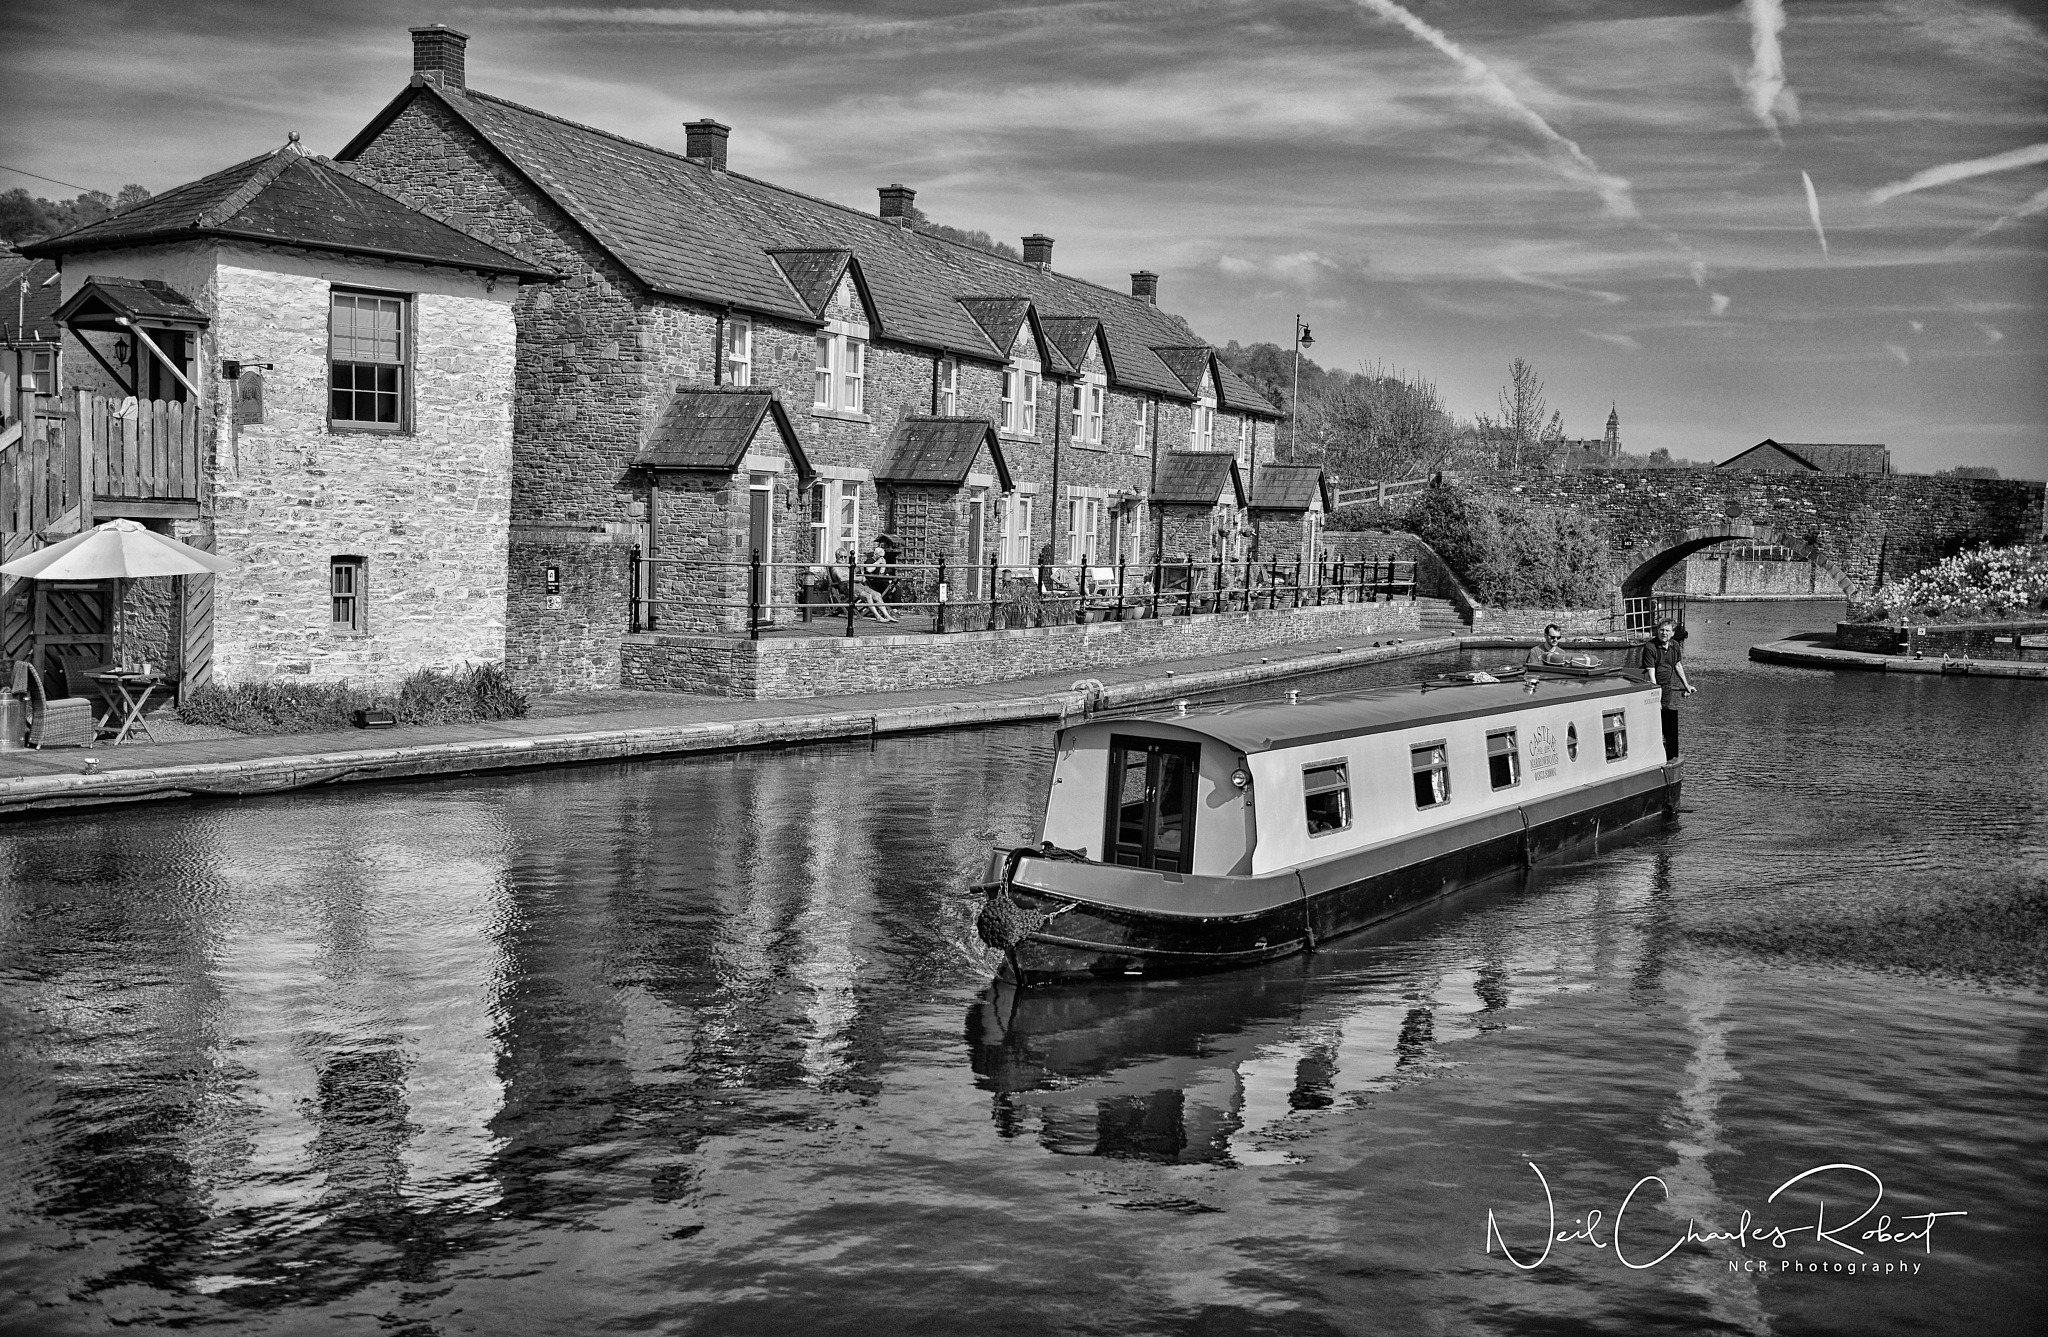 The Barge.. by ncr photography